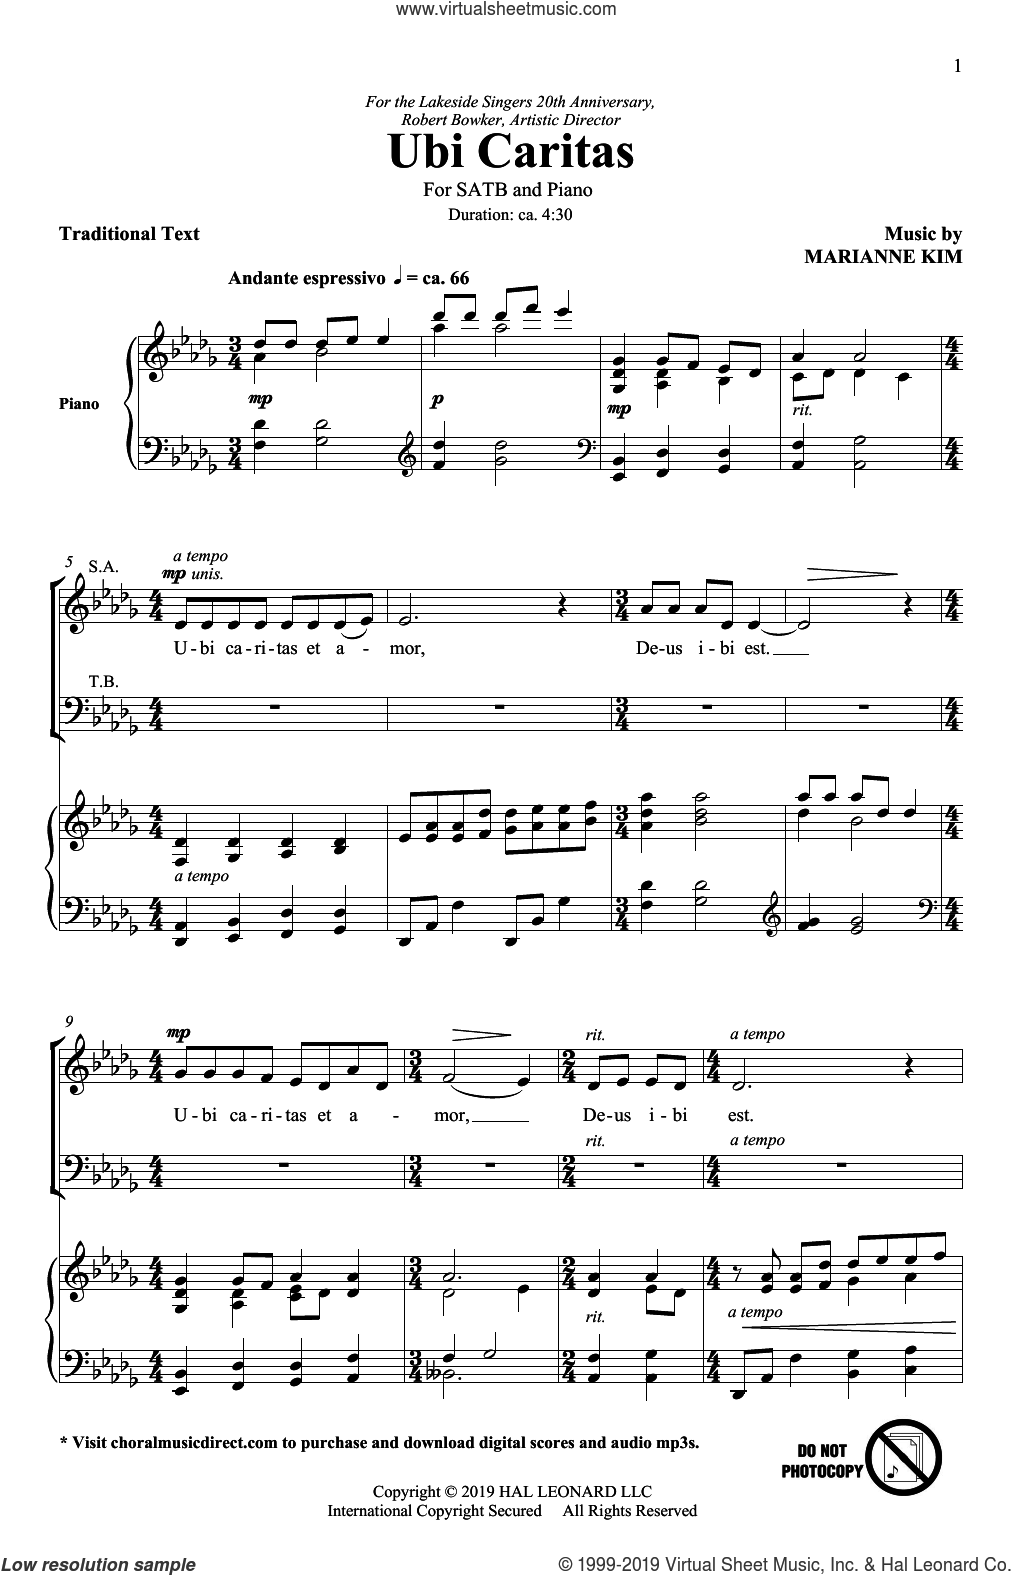 Ubi Caritas sheet music for choir (SATB: soprano, alto, tenor, bass) by Marianne Kim, intermediate skill level